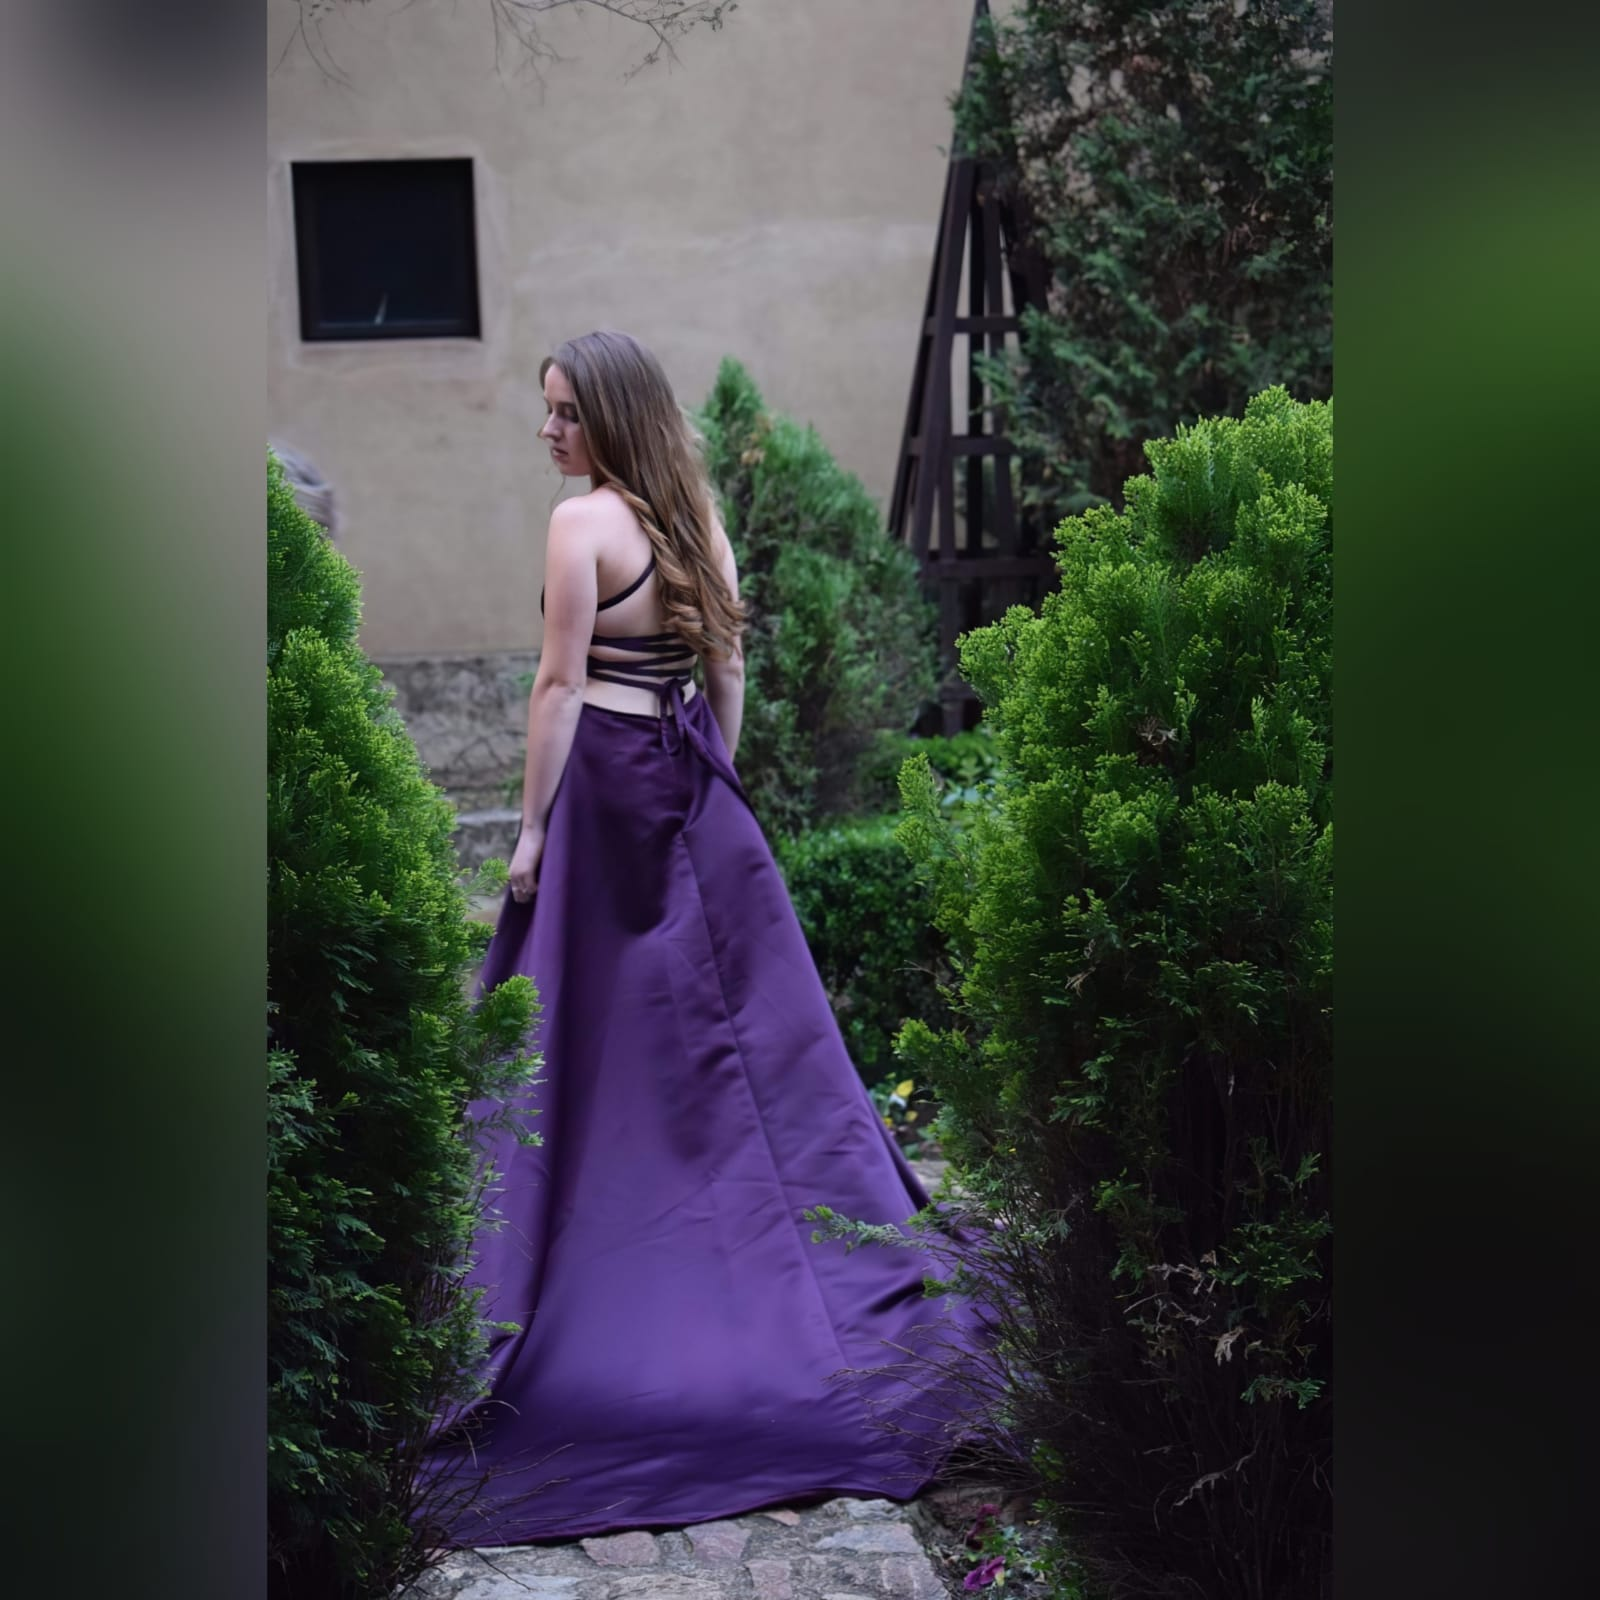 Plum long flowy prom dress with a plunging neckline 9 plum long flowy prom dress with a plunging neckline and a lace up open back with a slit and train.